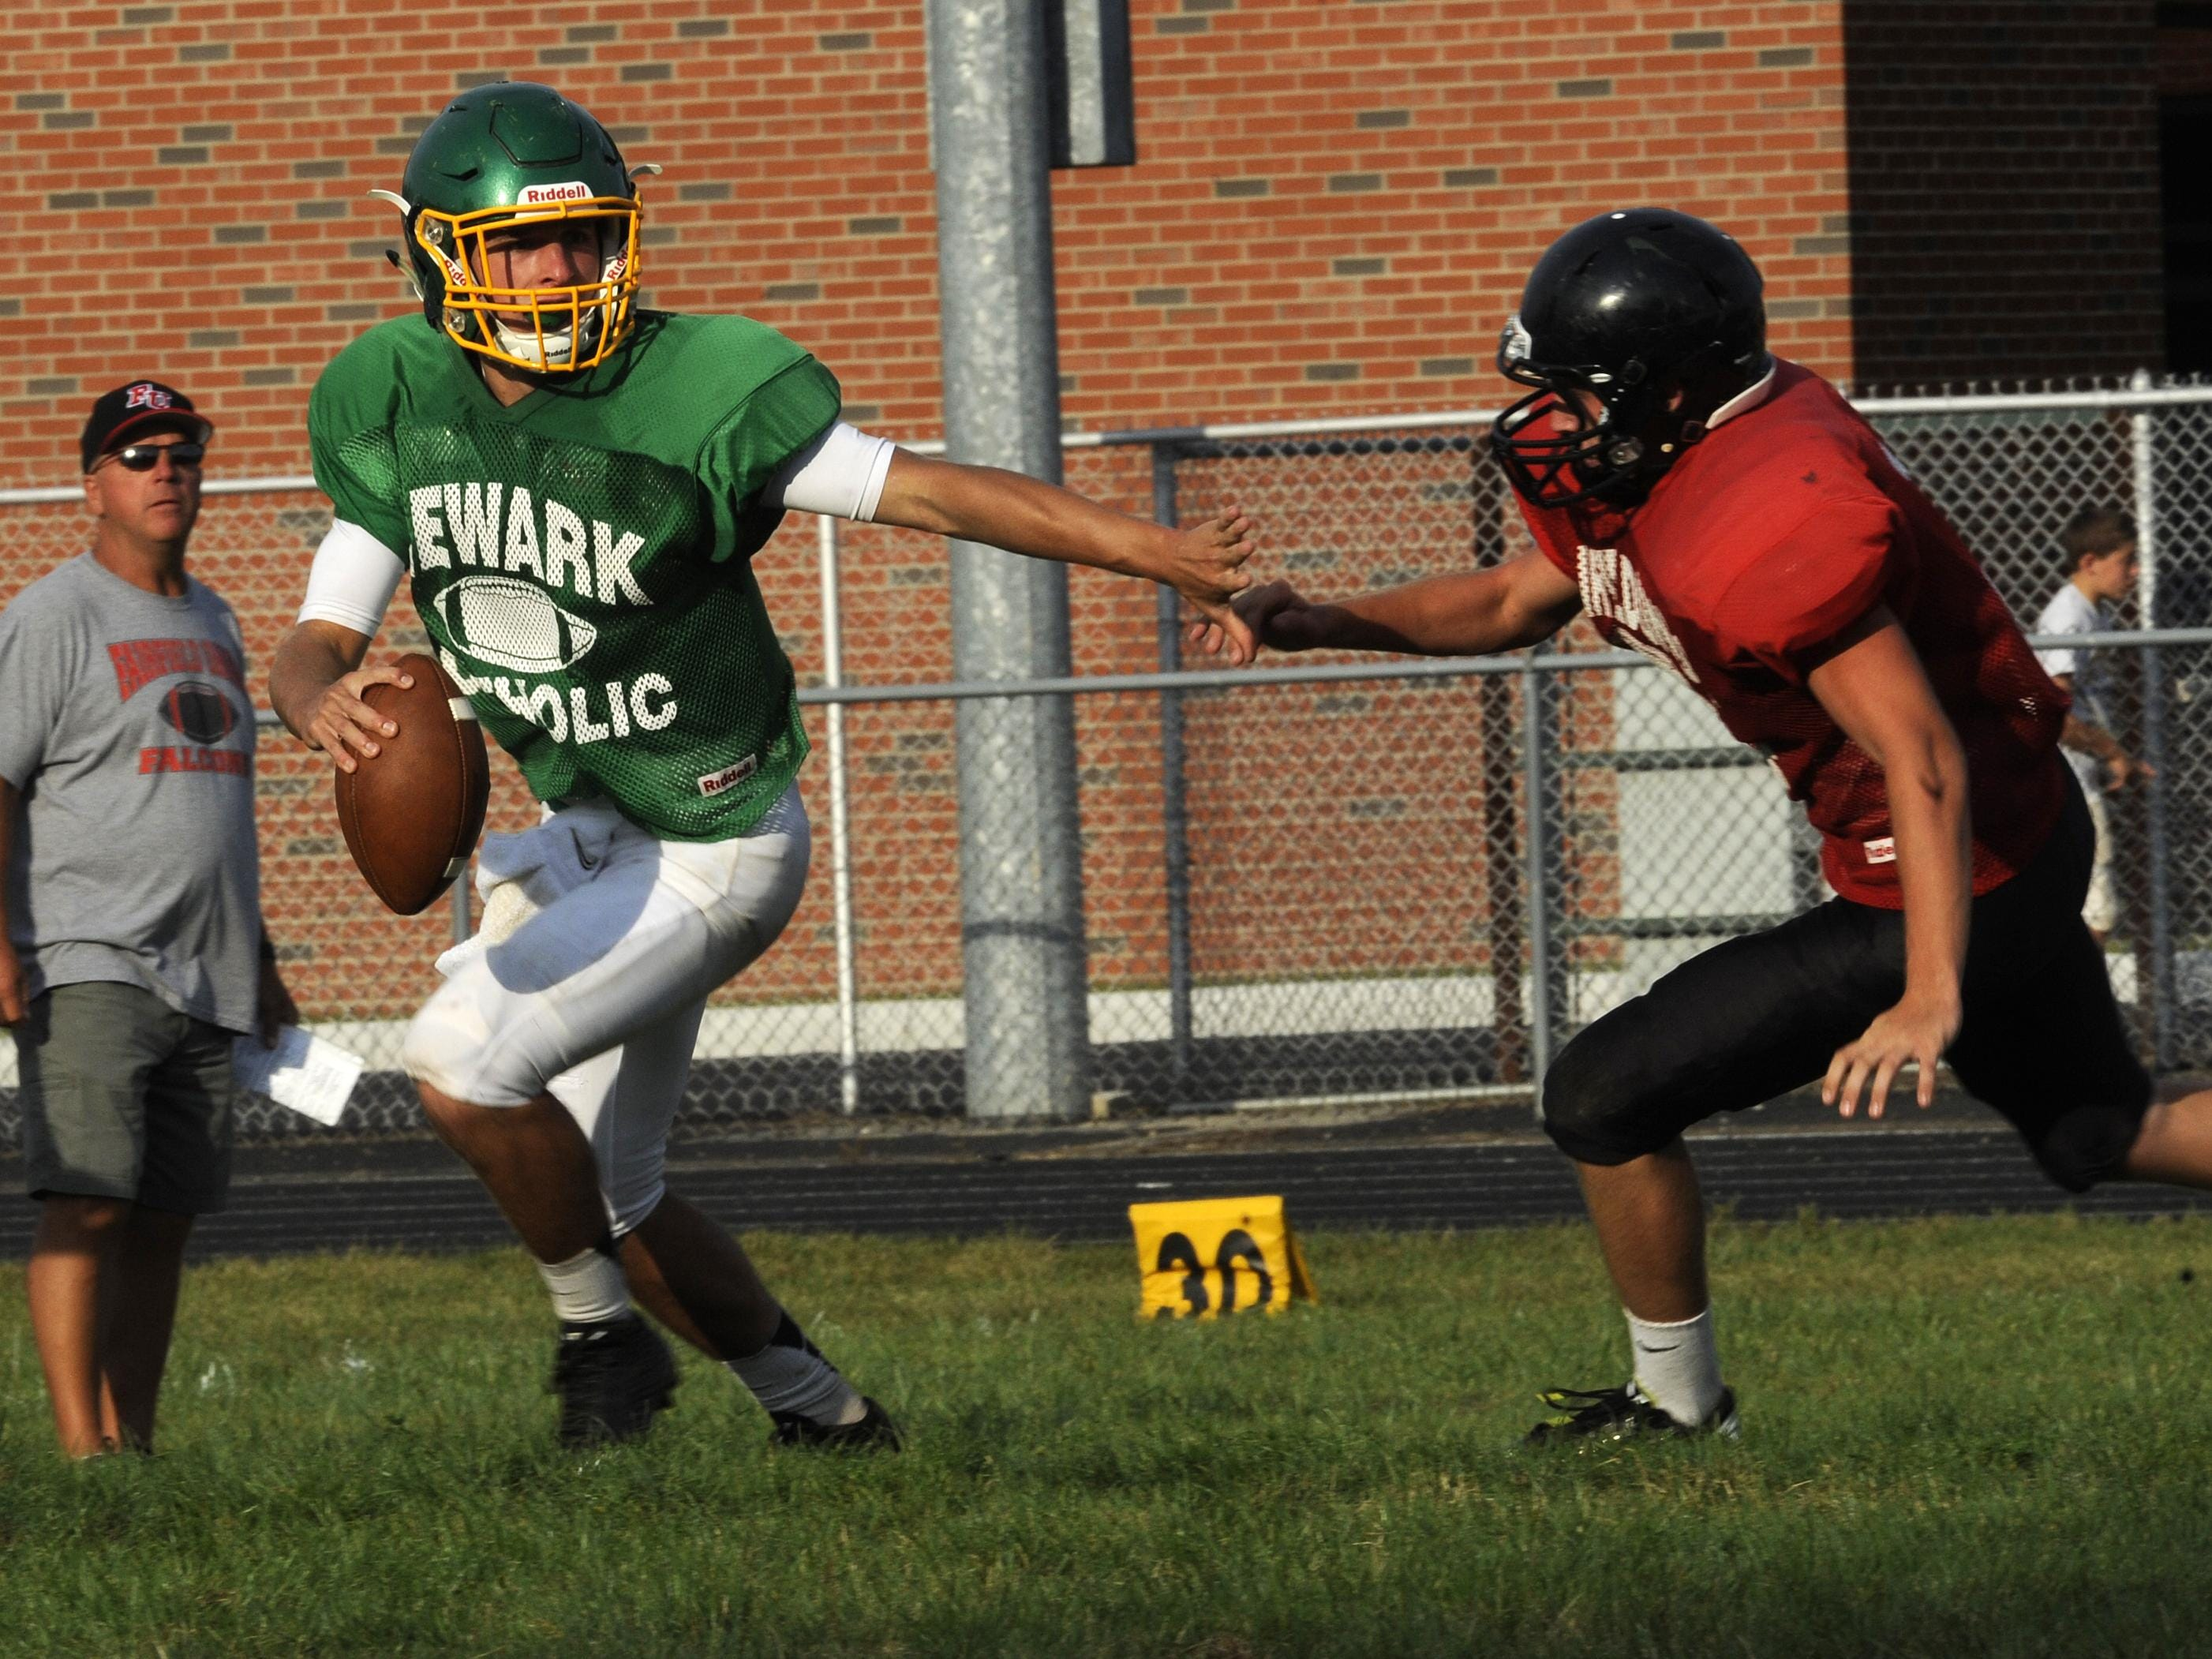 Newark Catholic's Kris Goodman attempts to elude a Fairfield Union defender during an August scrimmage. He threw for a touchdown and ran for another in a Week 1 win.